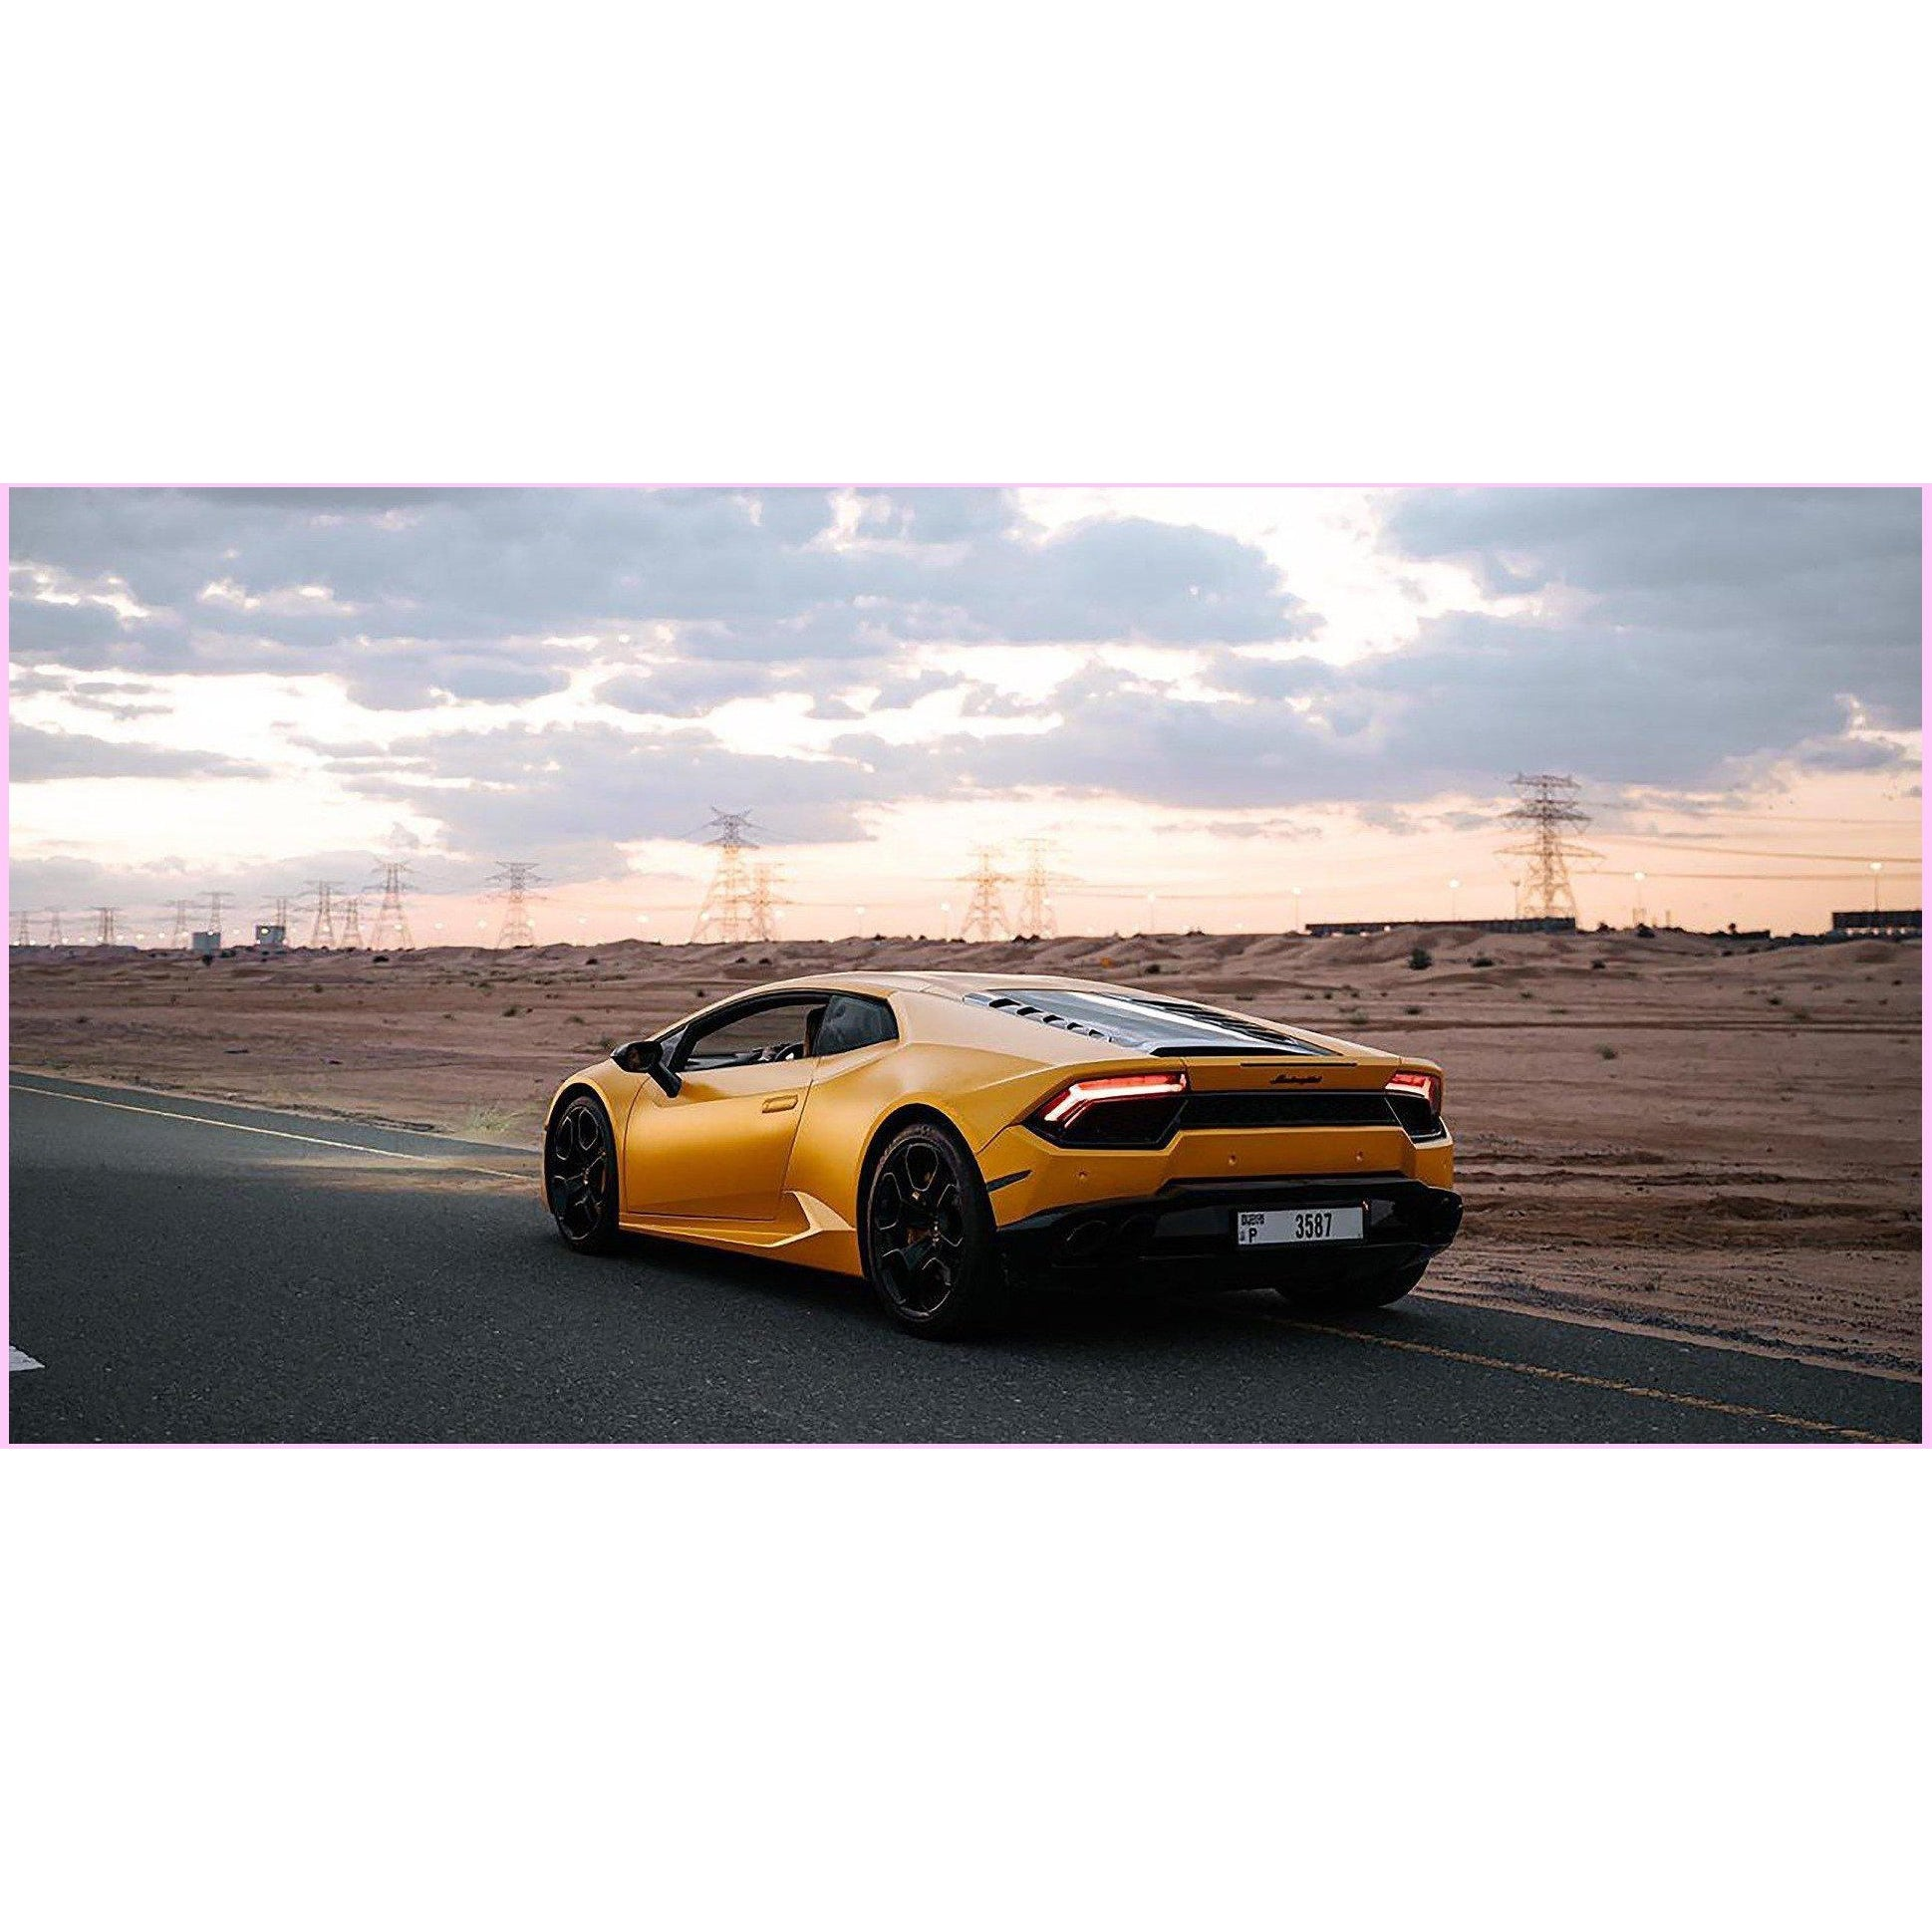 Yellow Lamborghini-Diamond Painting Kit 60x30cm (24x12 in) -Round-Heartful Diamonds